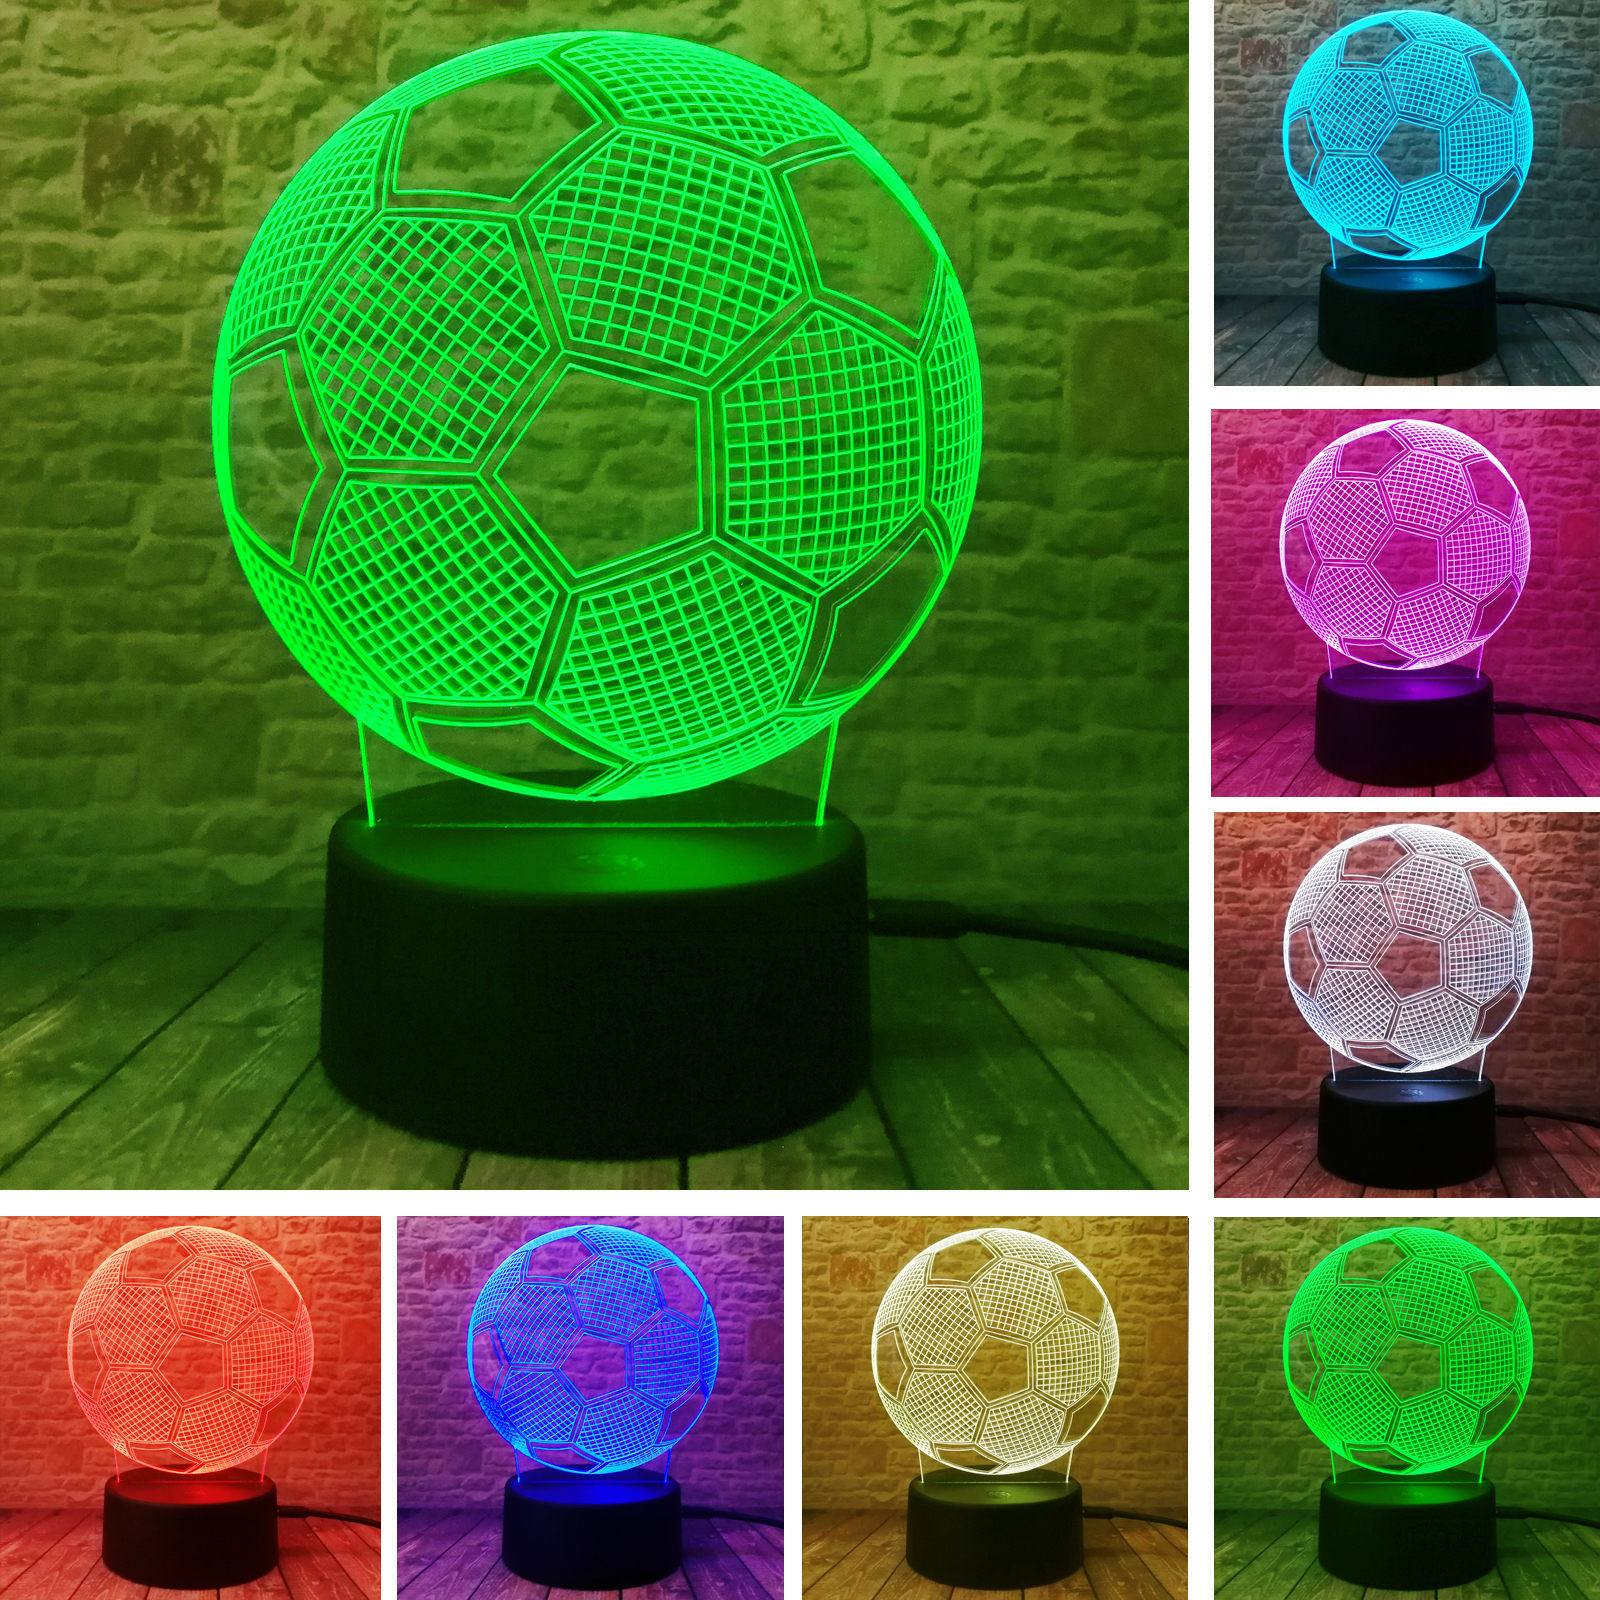 3D Stylish LED Lamp Touch Sensor Football Shaped 3D Night Light for Soccer Sports Fans Best Gift 7 Color Changing Lighting Lamp image